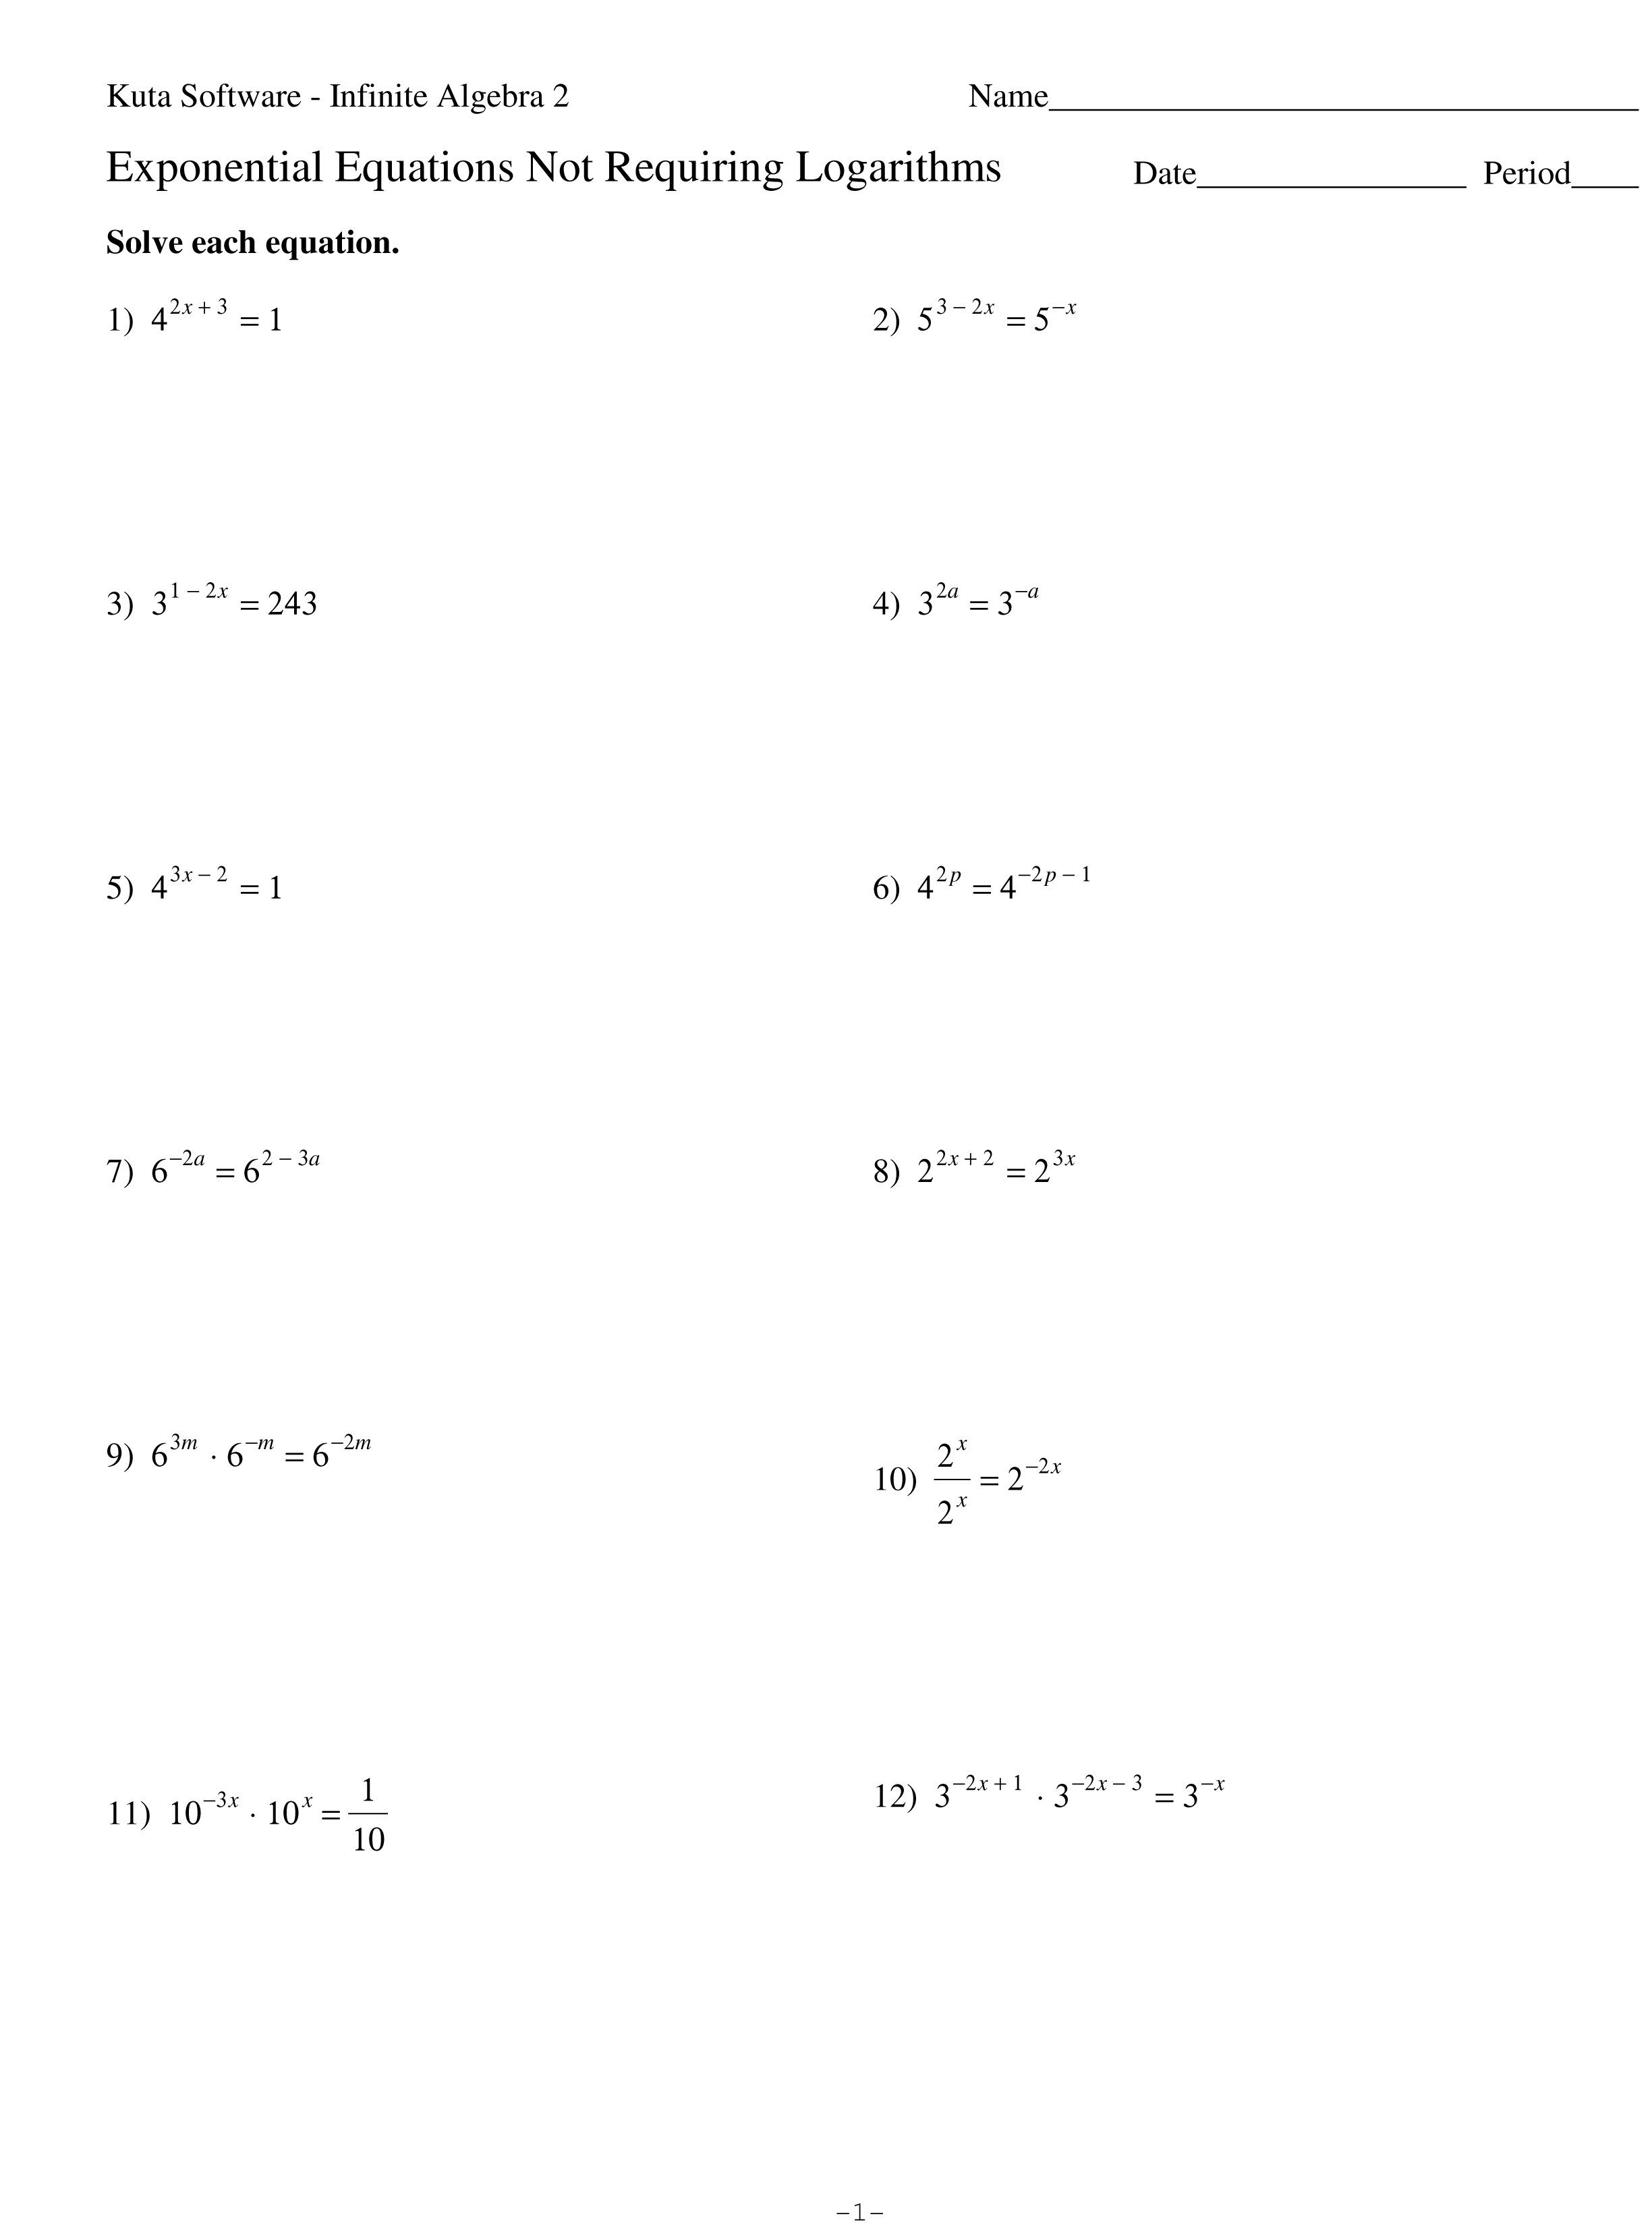 Homework Exponential Equations